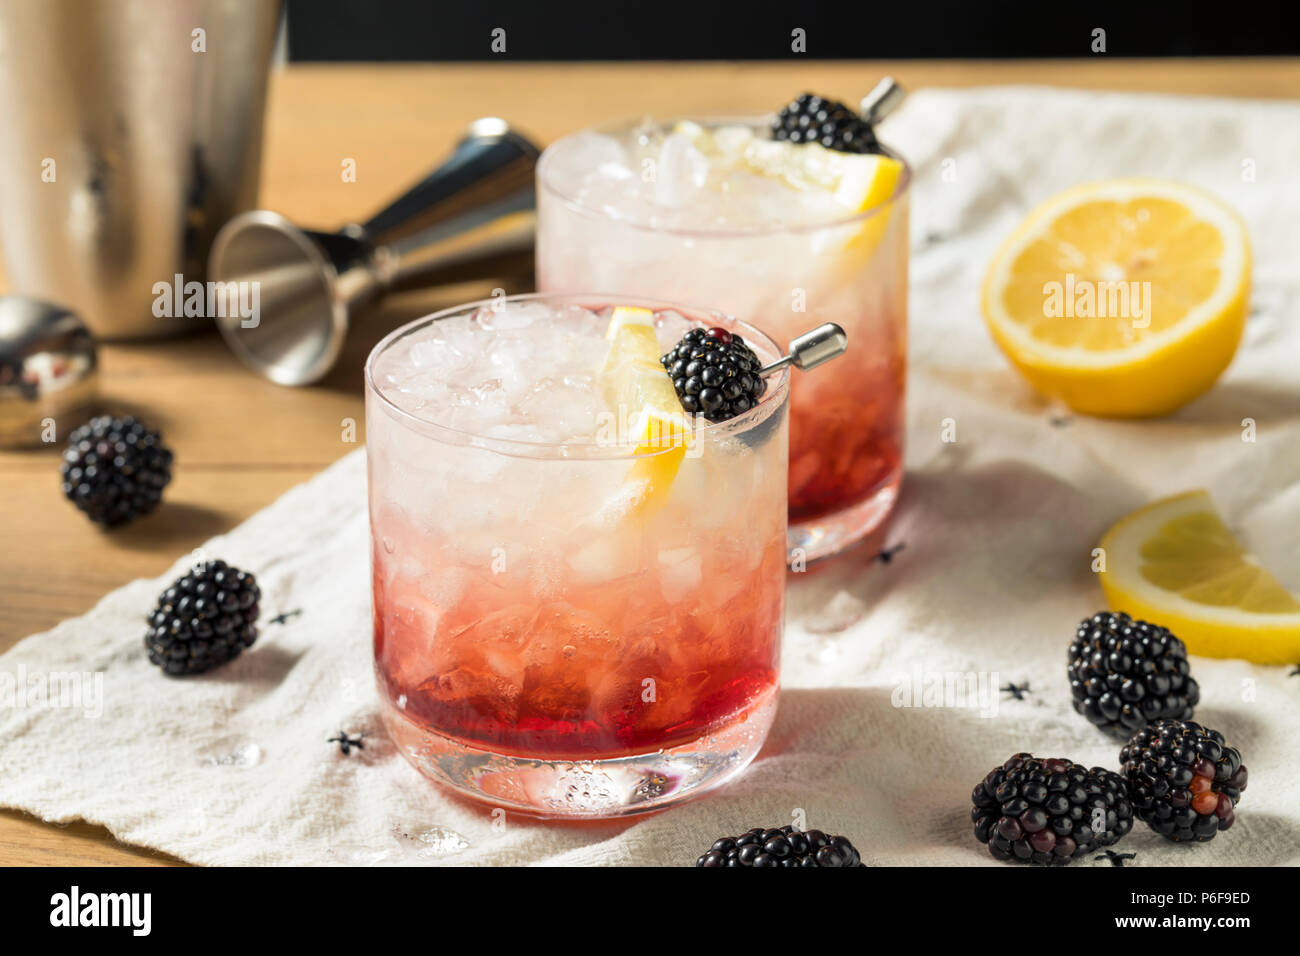 Alcoholic Blackberry Gin Bramble Cocktail with Lemon - Stock Image